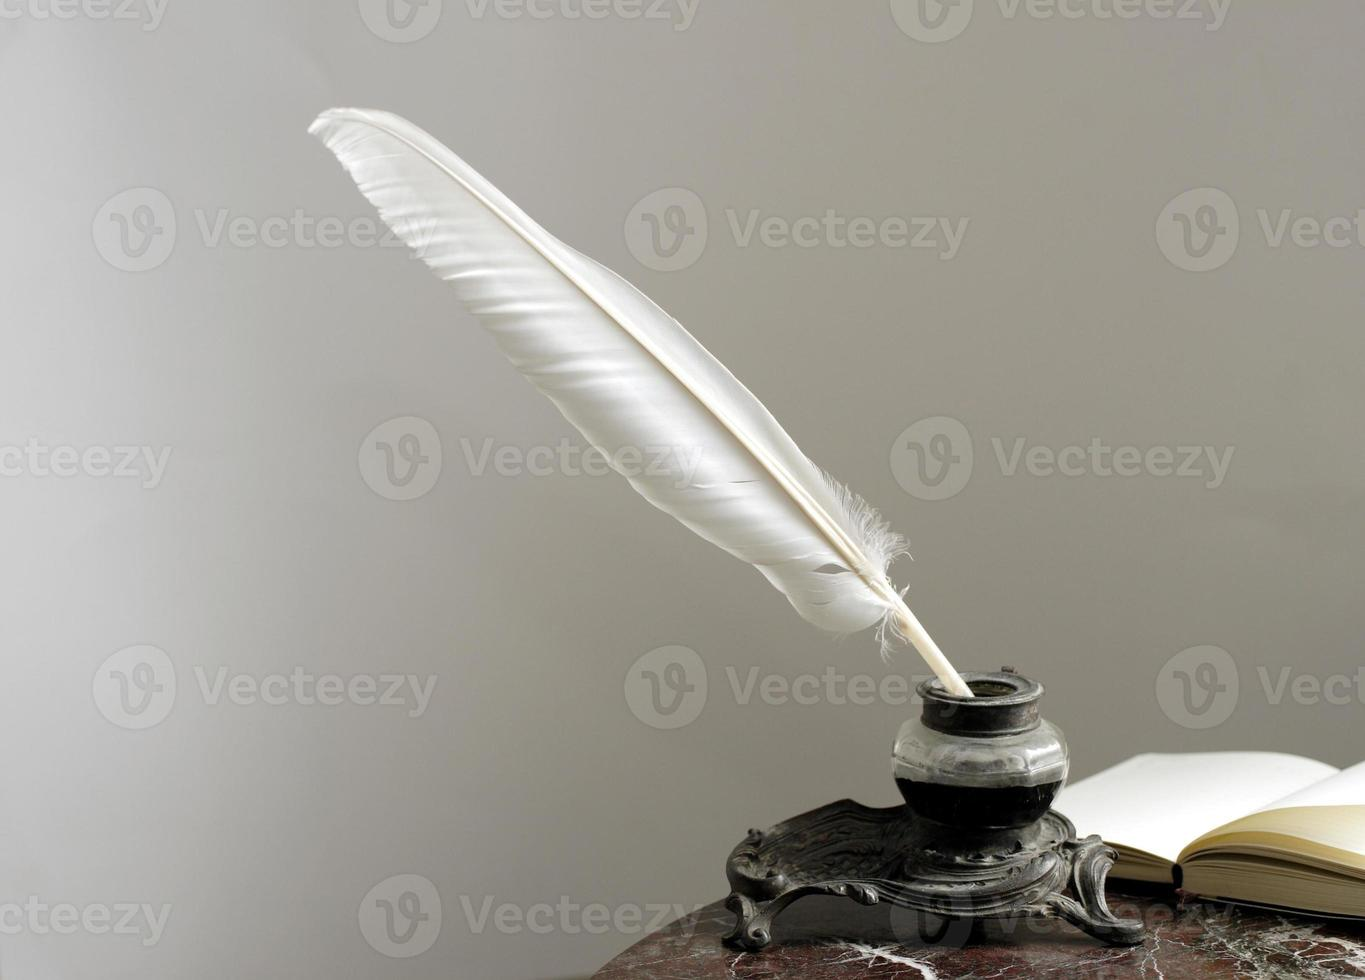 Feather Quill photo